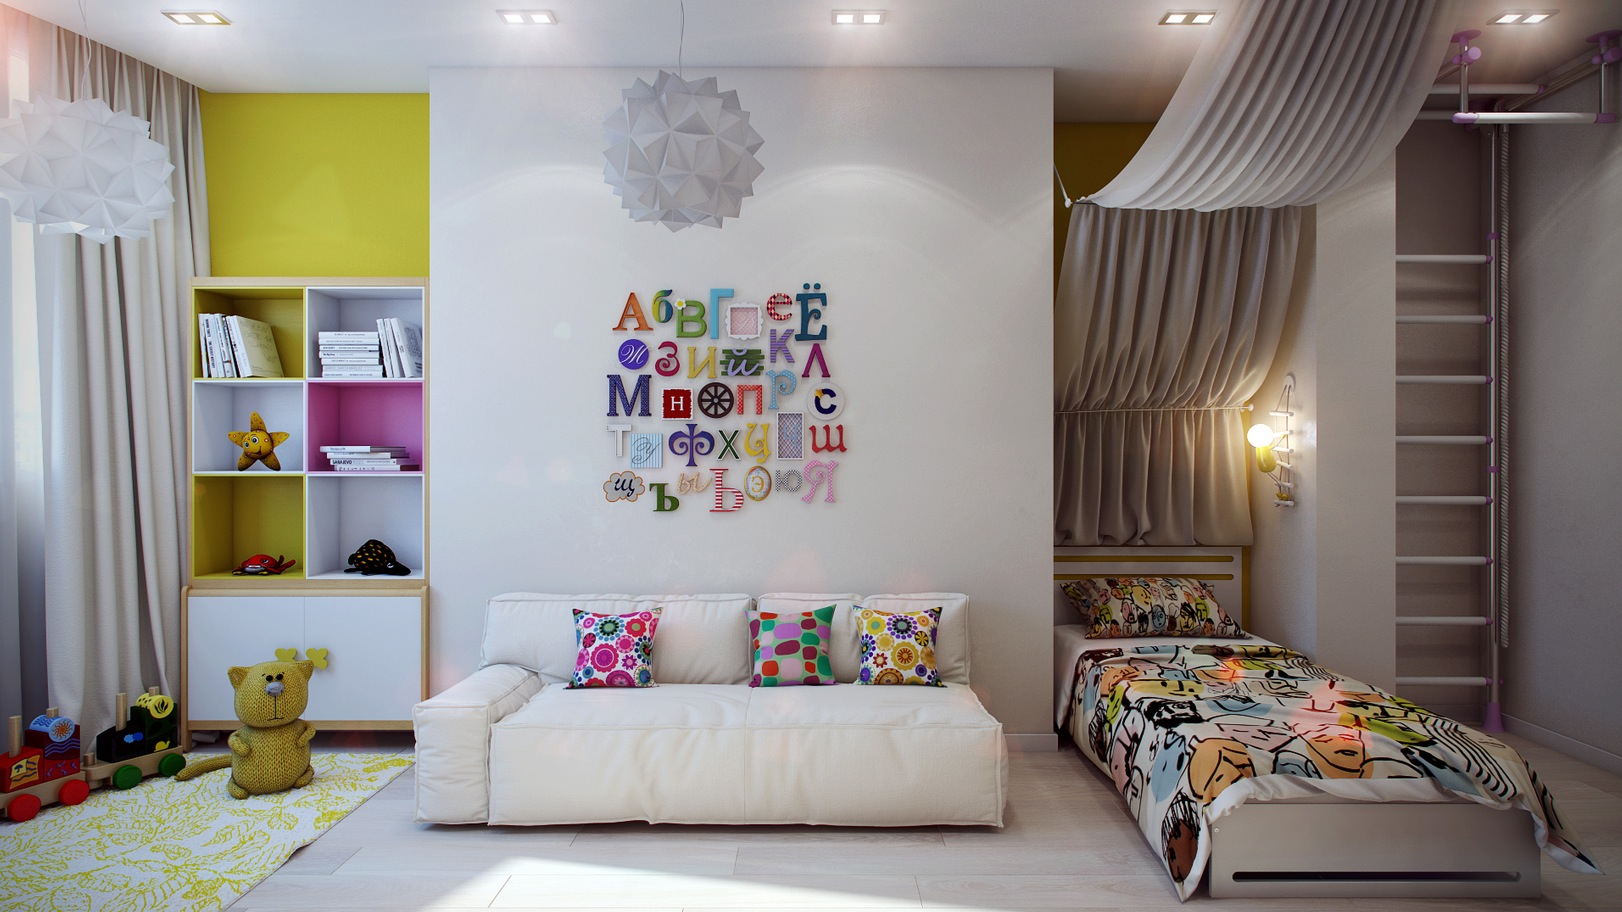 Casting color over kids rooms for Ideas for kids room